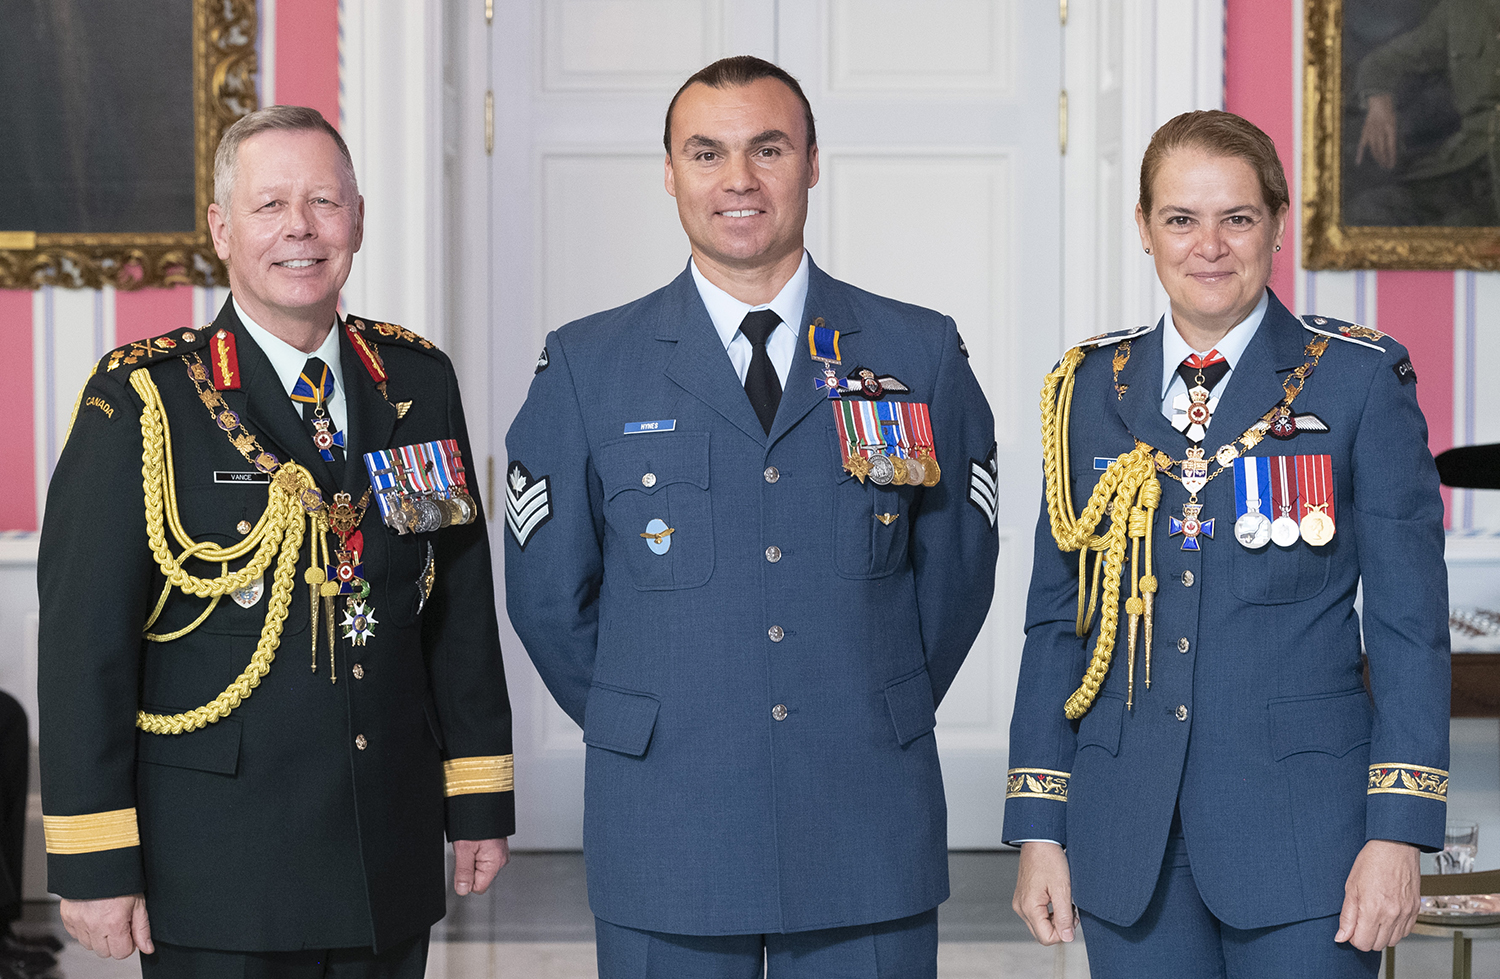 Sergeant Gordon Joseph Hynes, M.M.M., C.D. (centre) stands with Governor-General Julie Payette and Chief of the Defence Staff General Jonathan Vance after receiving the Member insignia of the Order of Military Merit from the Governor General. PHOTO: Sergeant Johanie Maheu, Rideau Hall, © OSGG, GG05-2019-0118-037